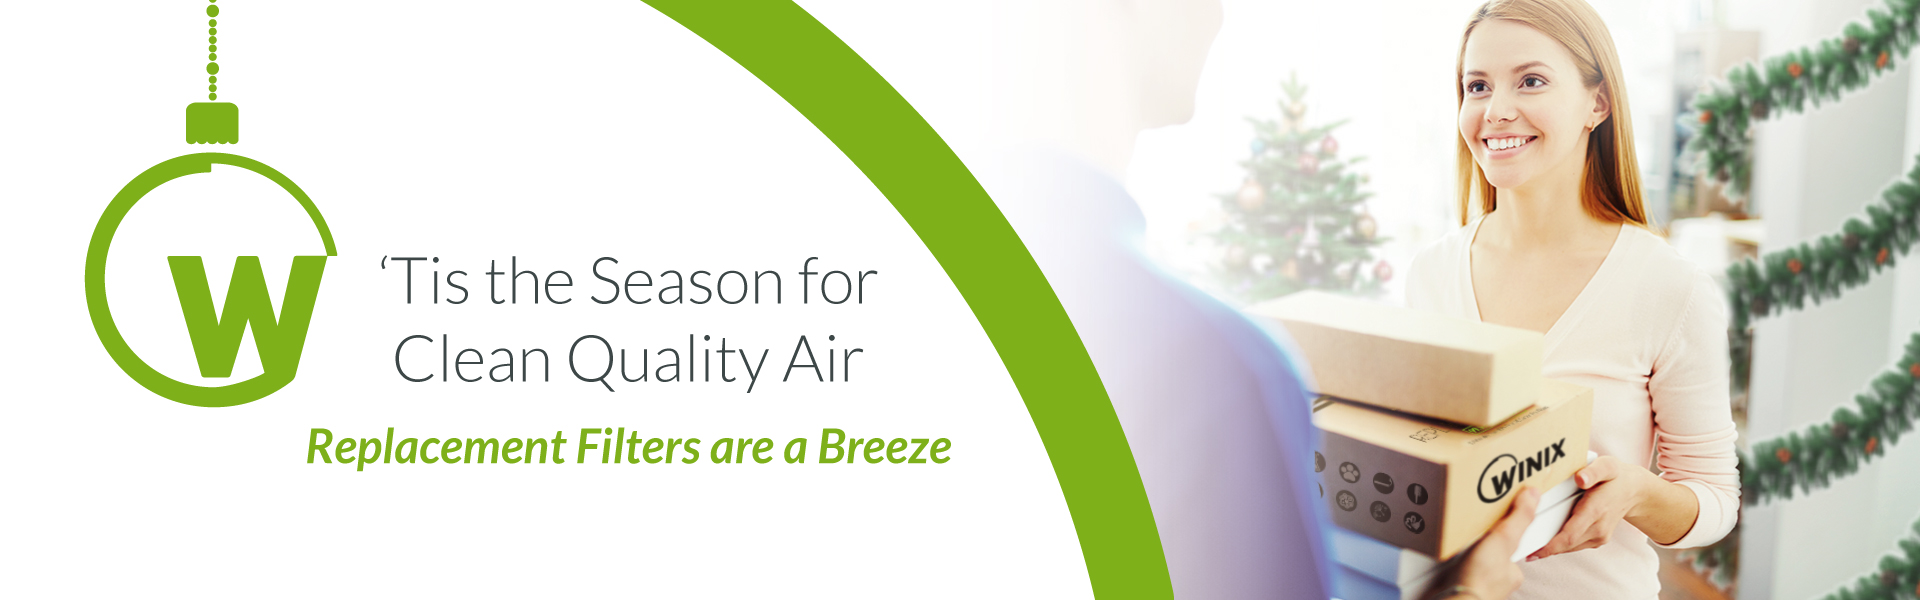 This is the season for Clean Quality Air. Filter Replacements are a Breeze.